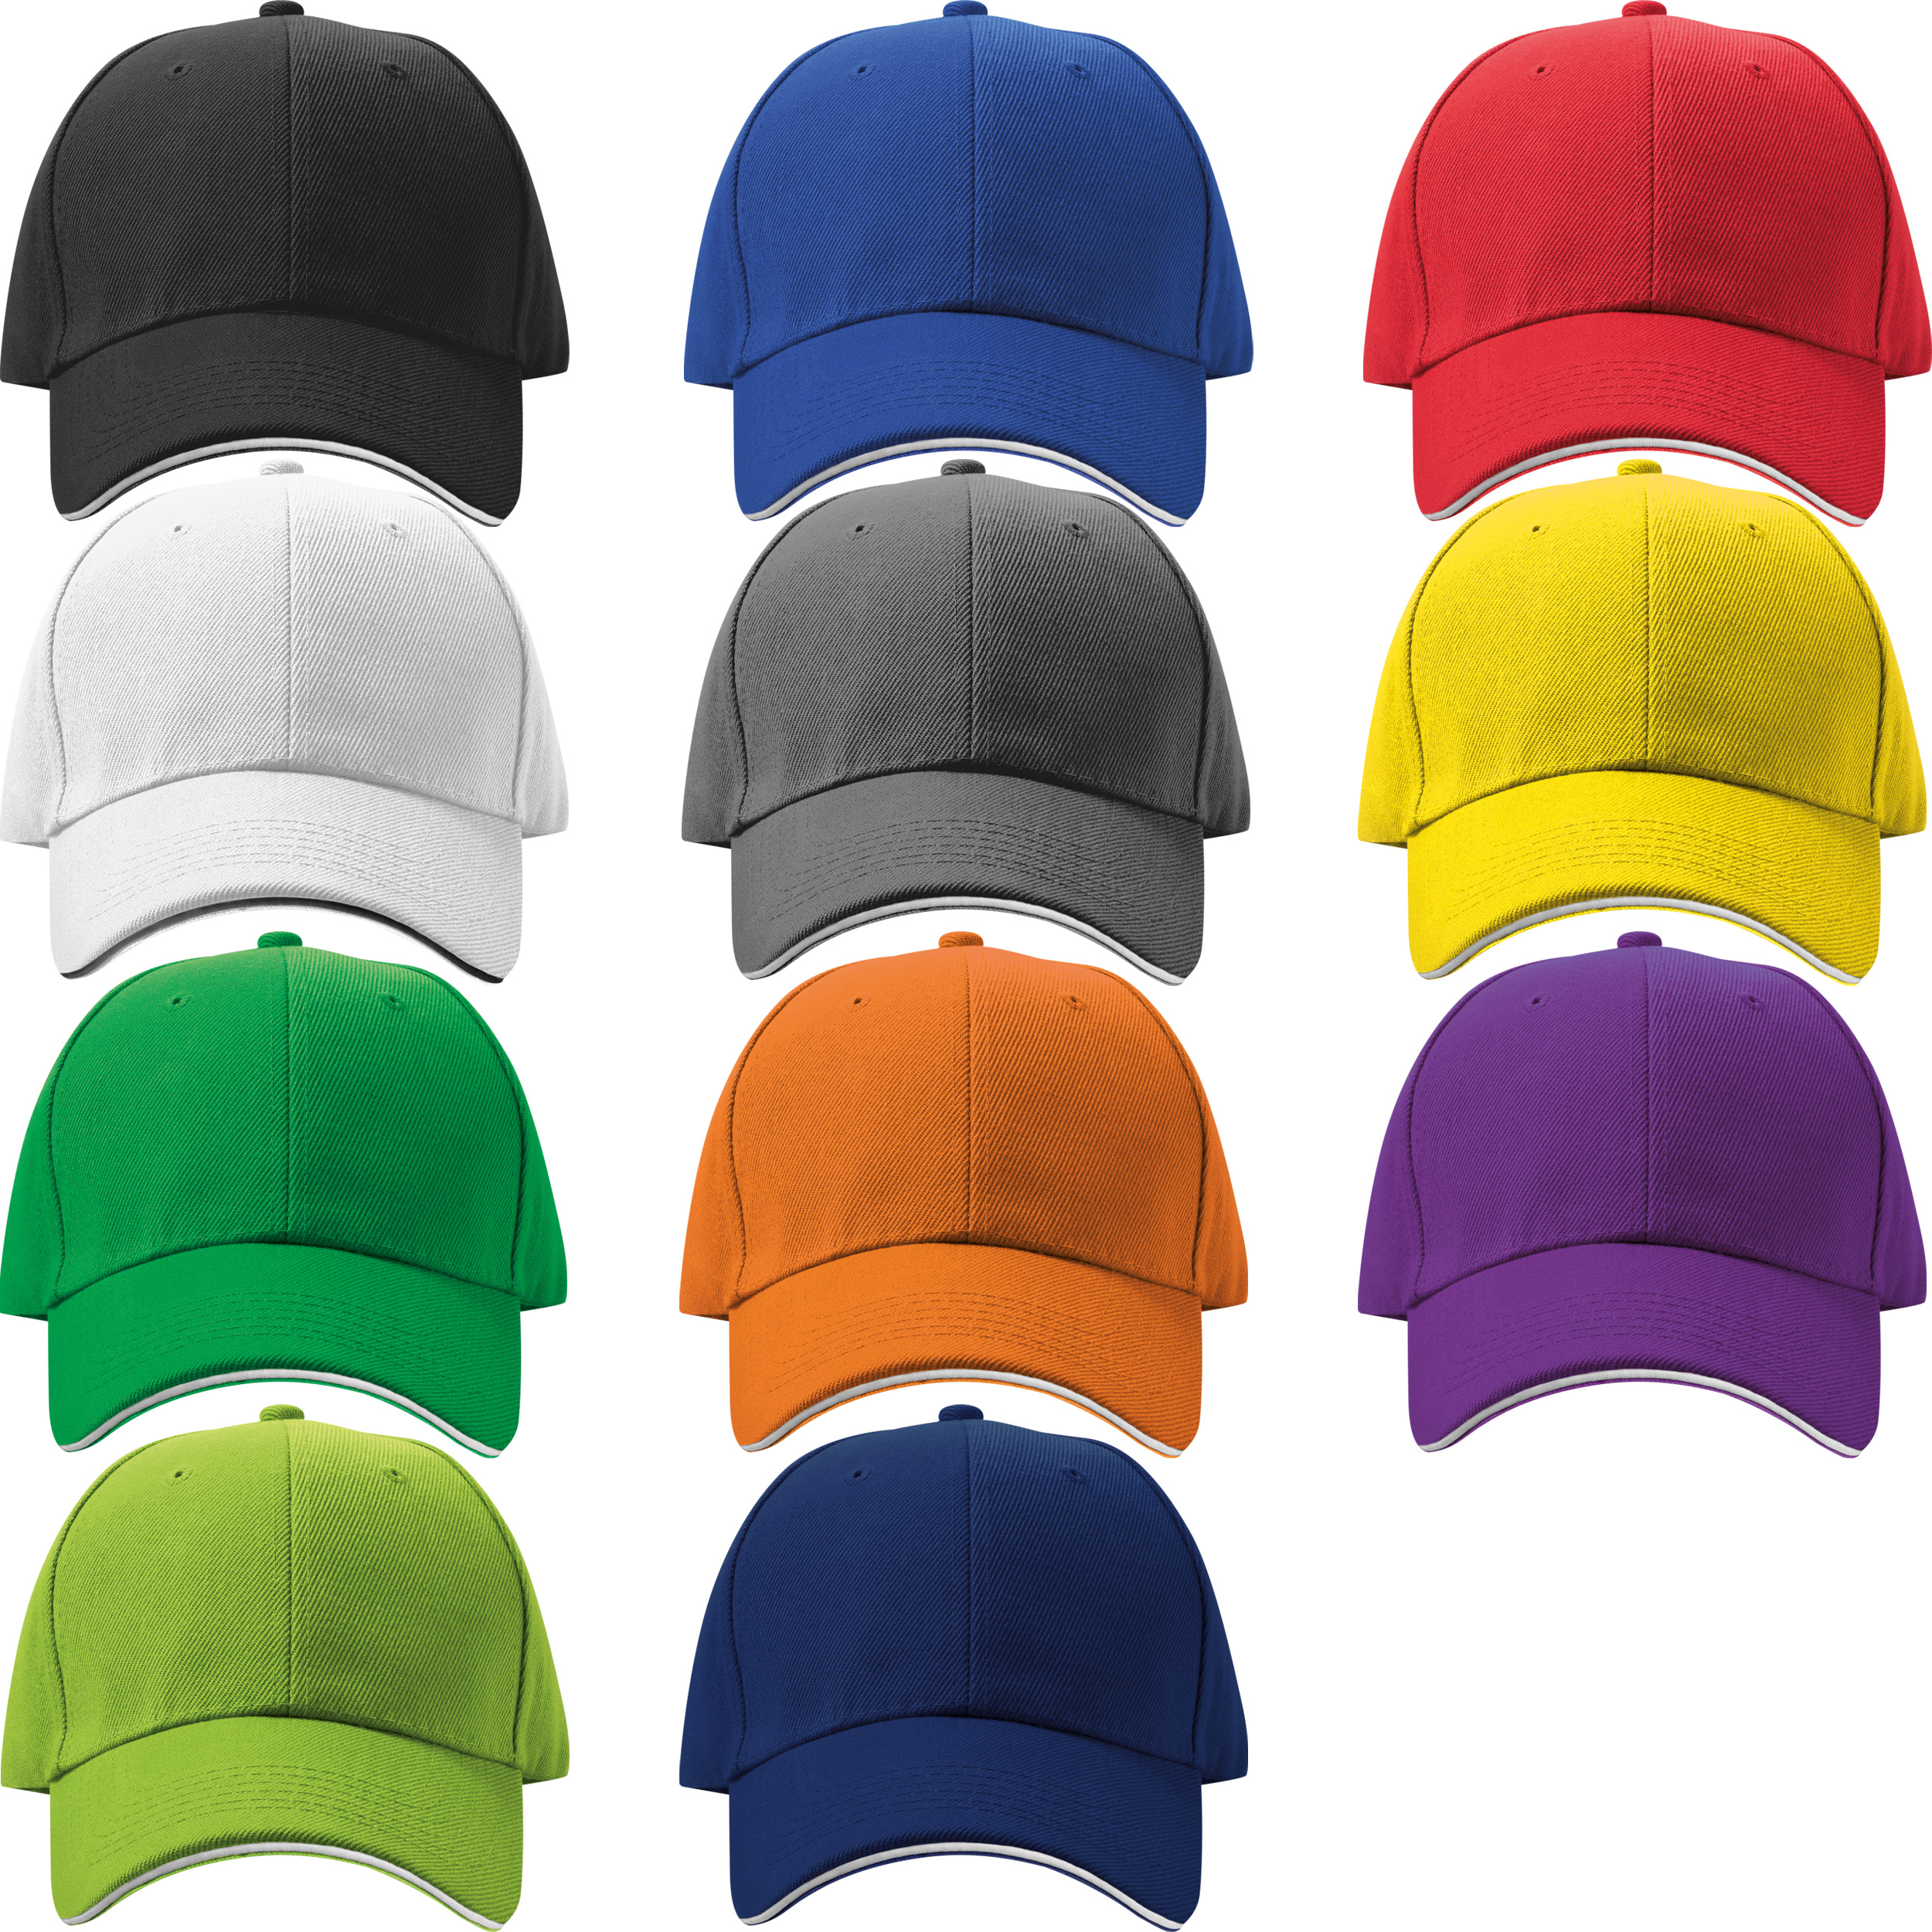 Casquette '6 Panel' 'Sandwich' 'heavy-brushed'